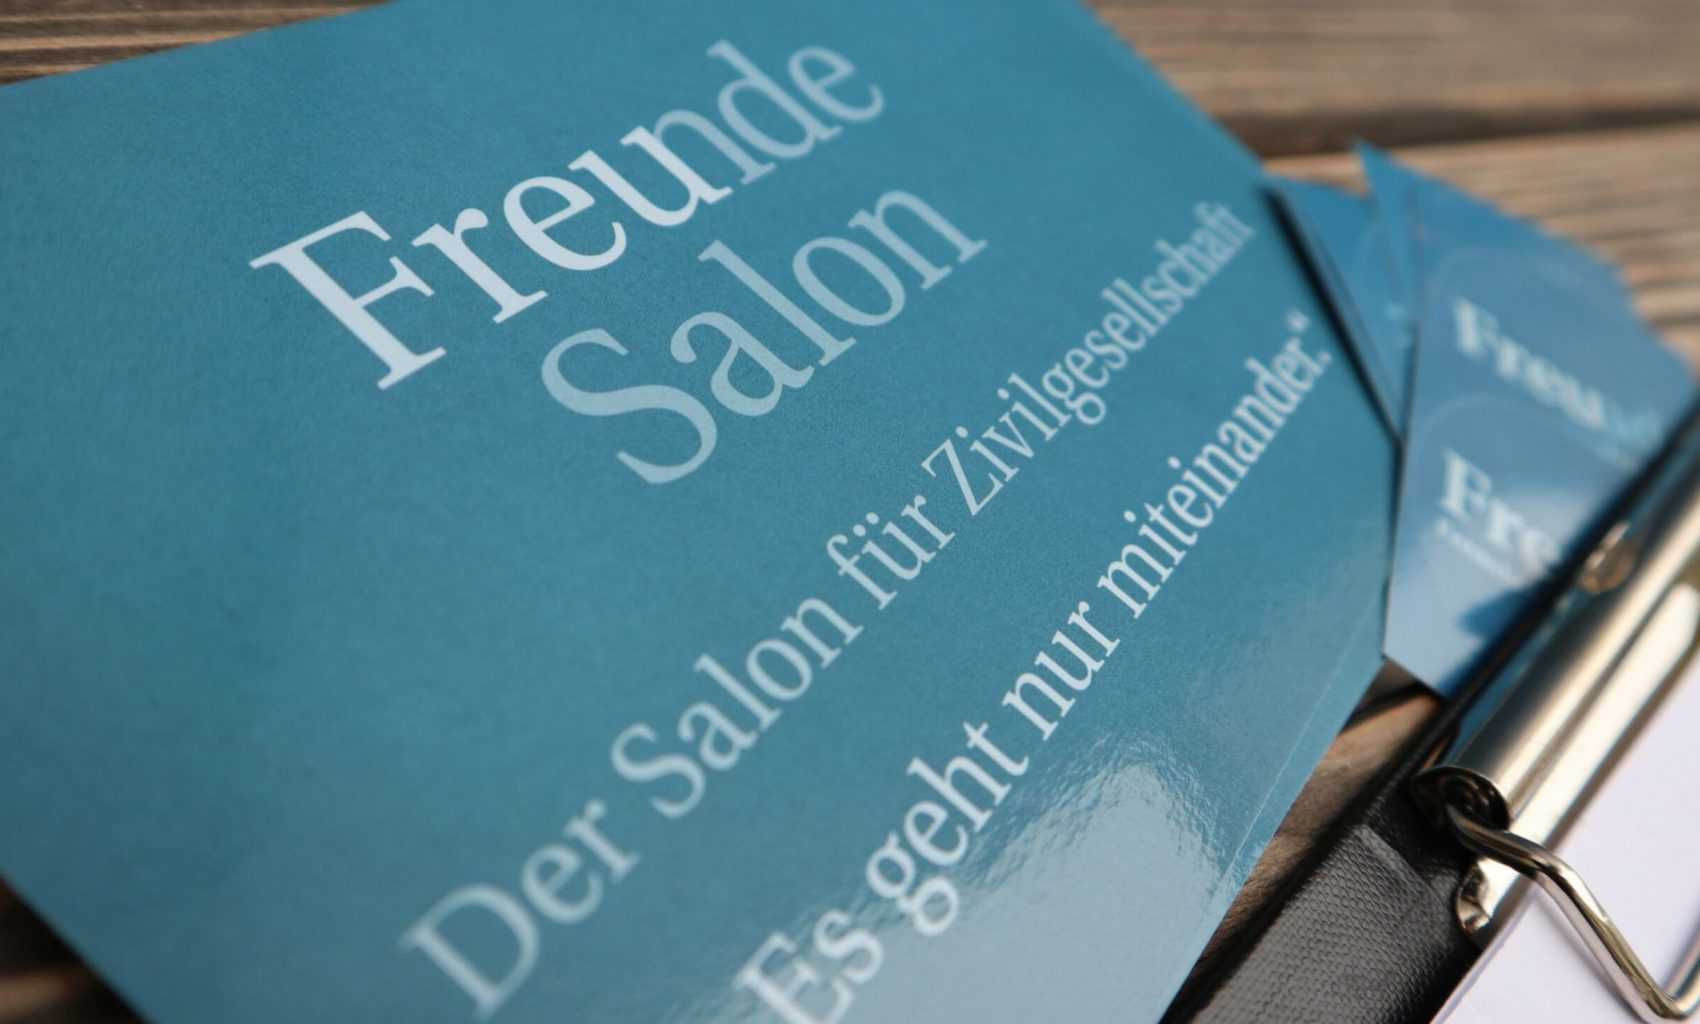 Freunde Salon: Events ab sofort online